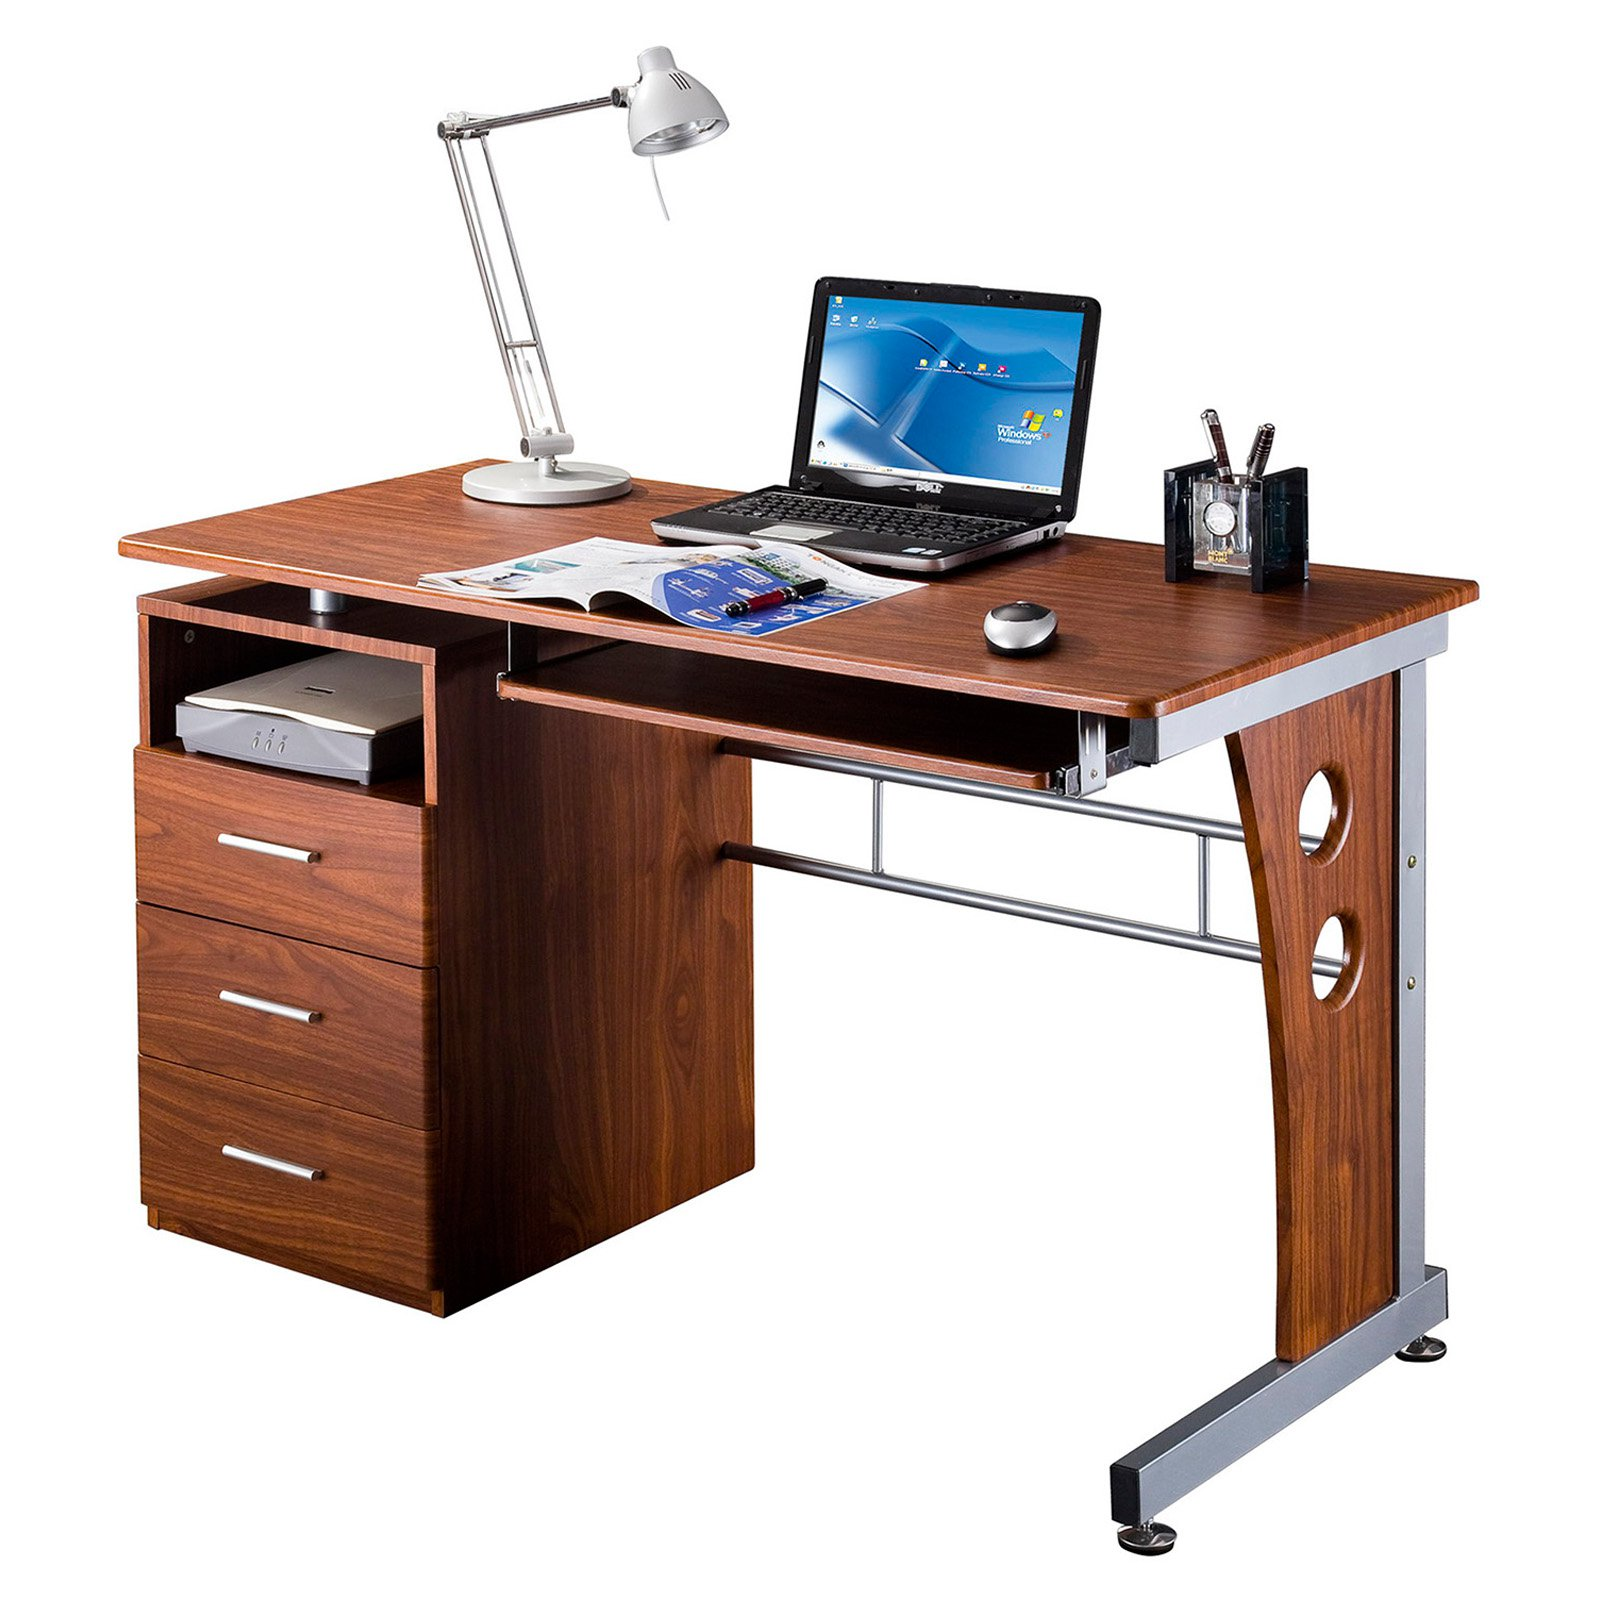 Techni Mobili RTA-3520 Computer Desk with Storage